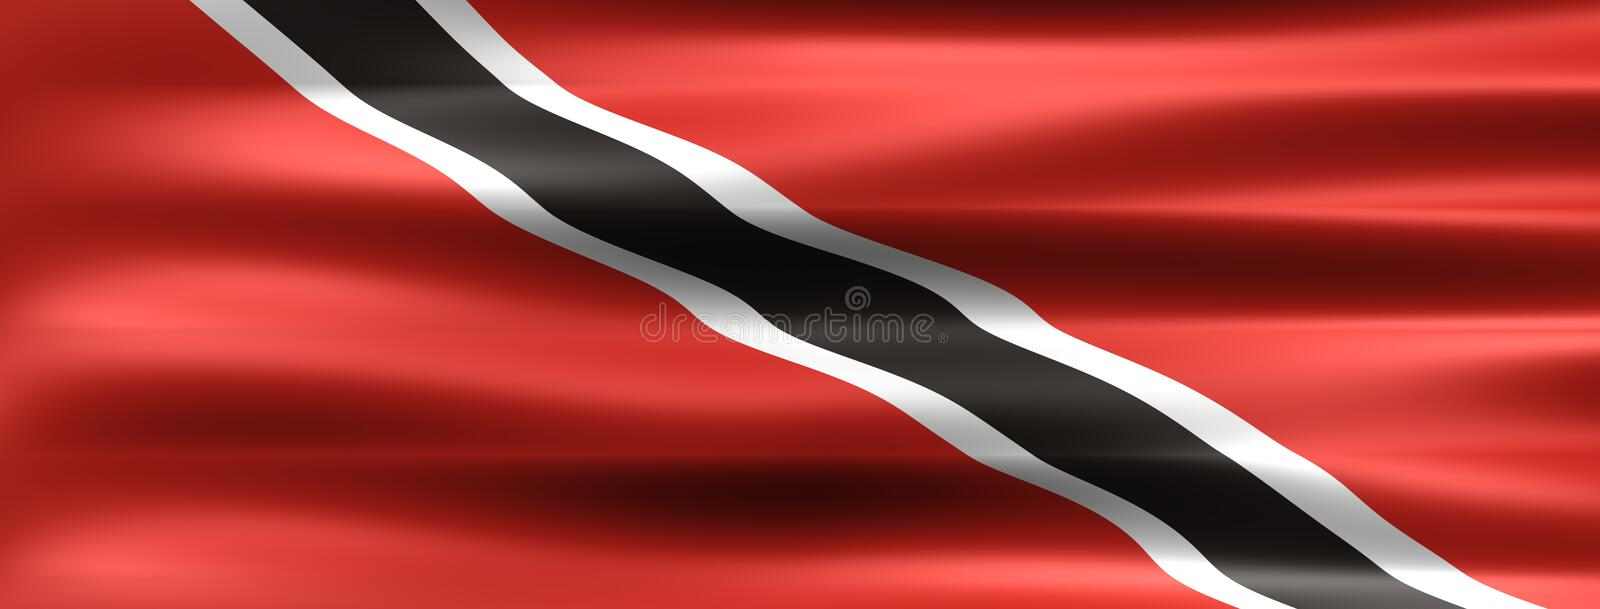 Trinidad and Tobago vector illustration